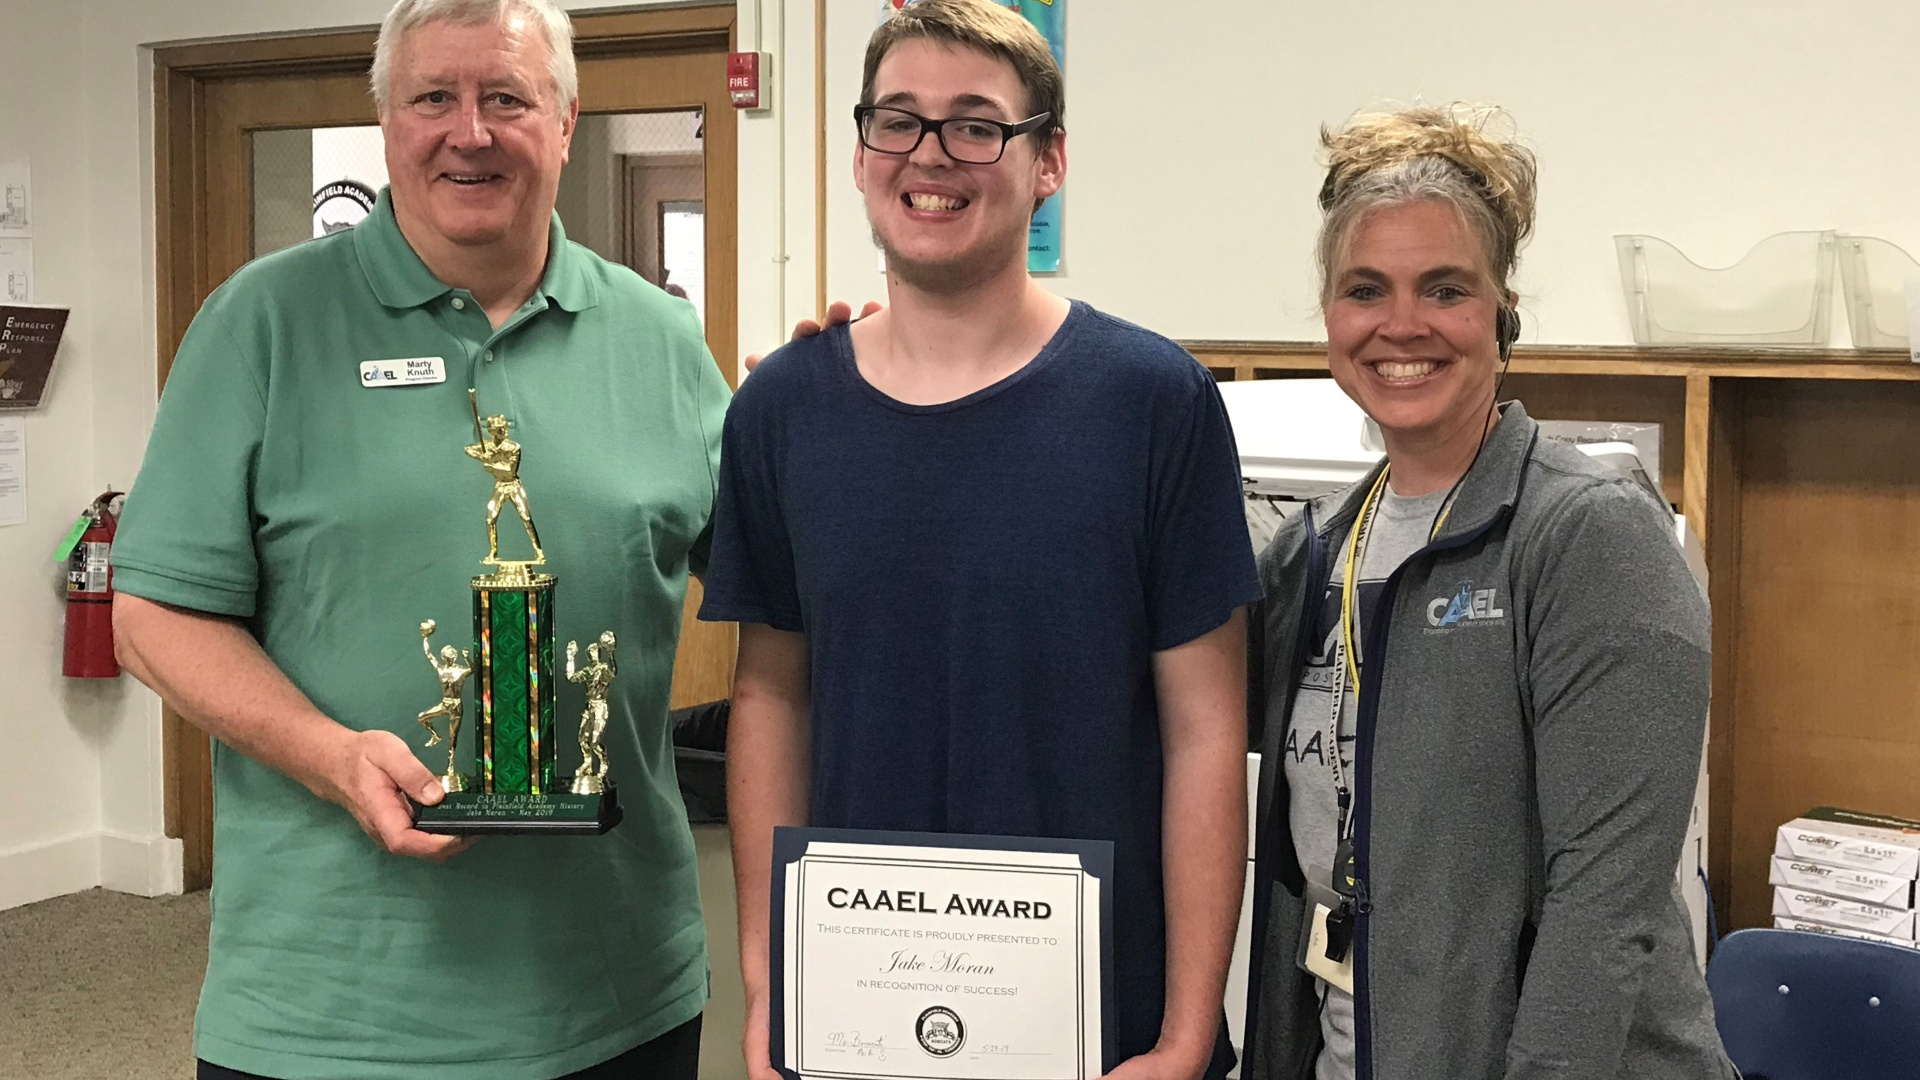 2018 - 2019 CAAEL Sportsmanship Award Winner